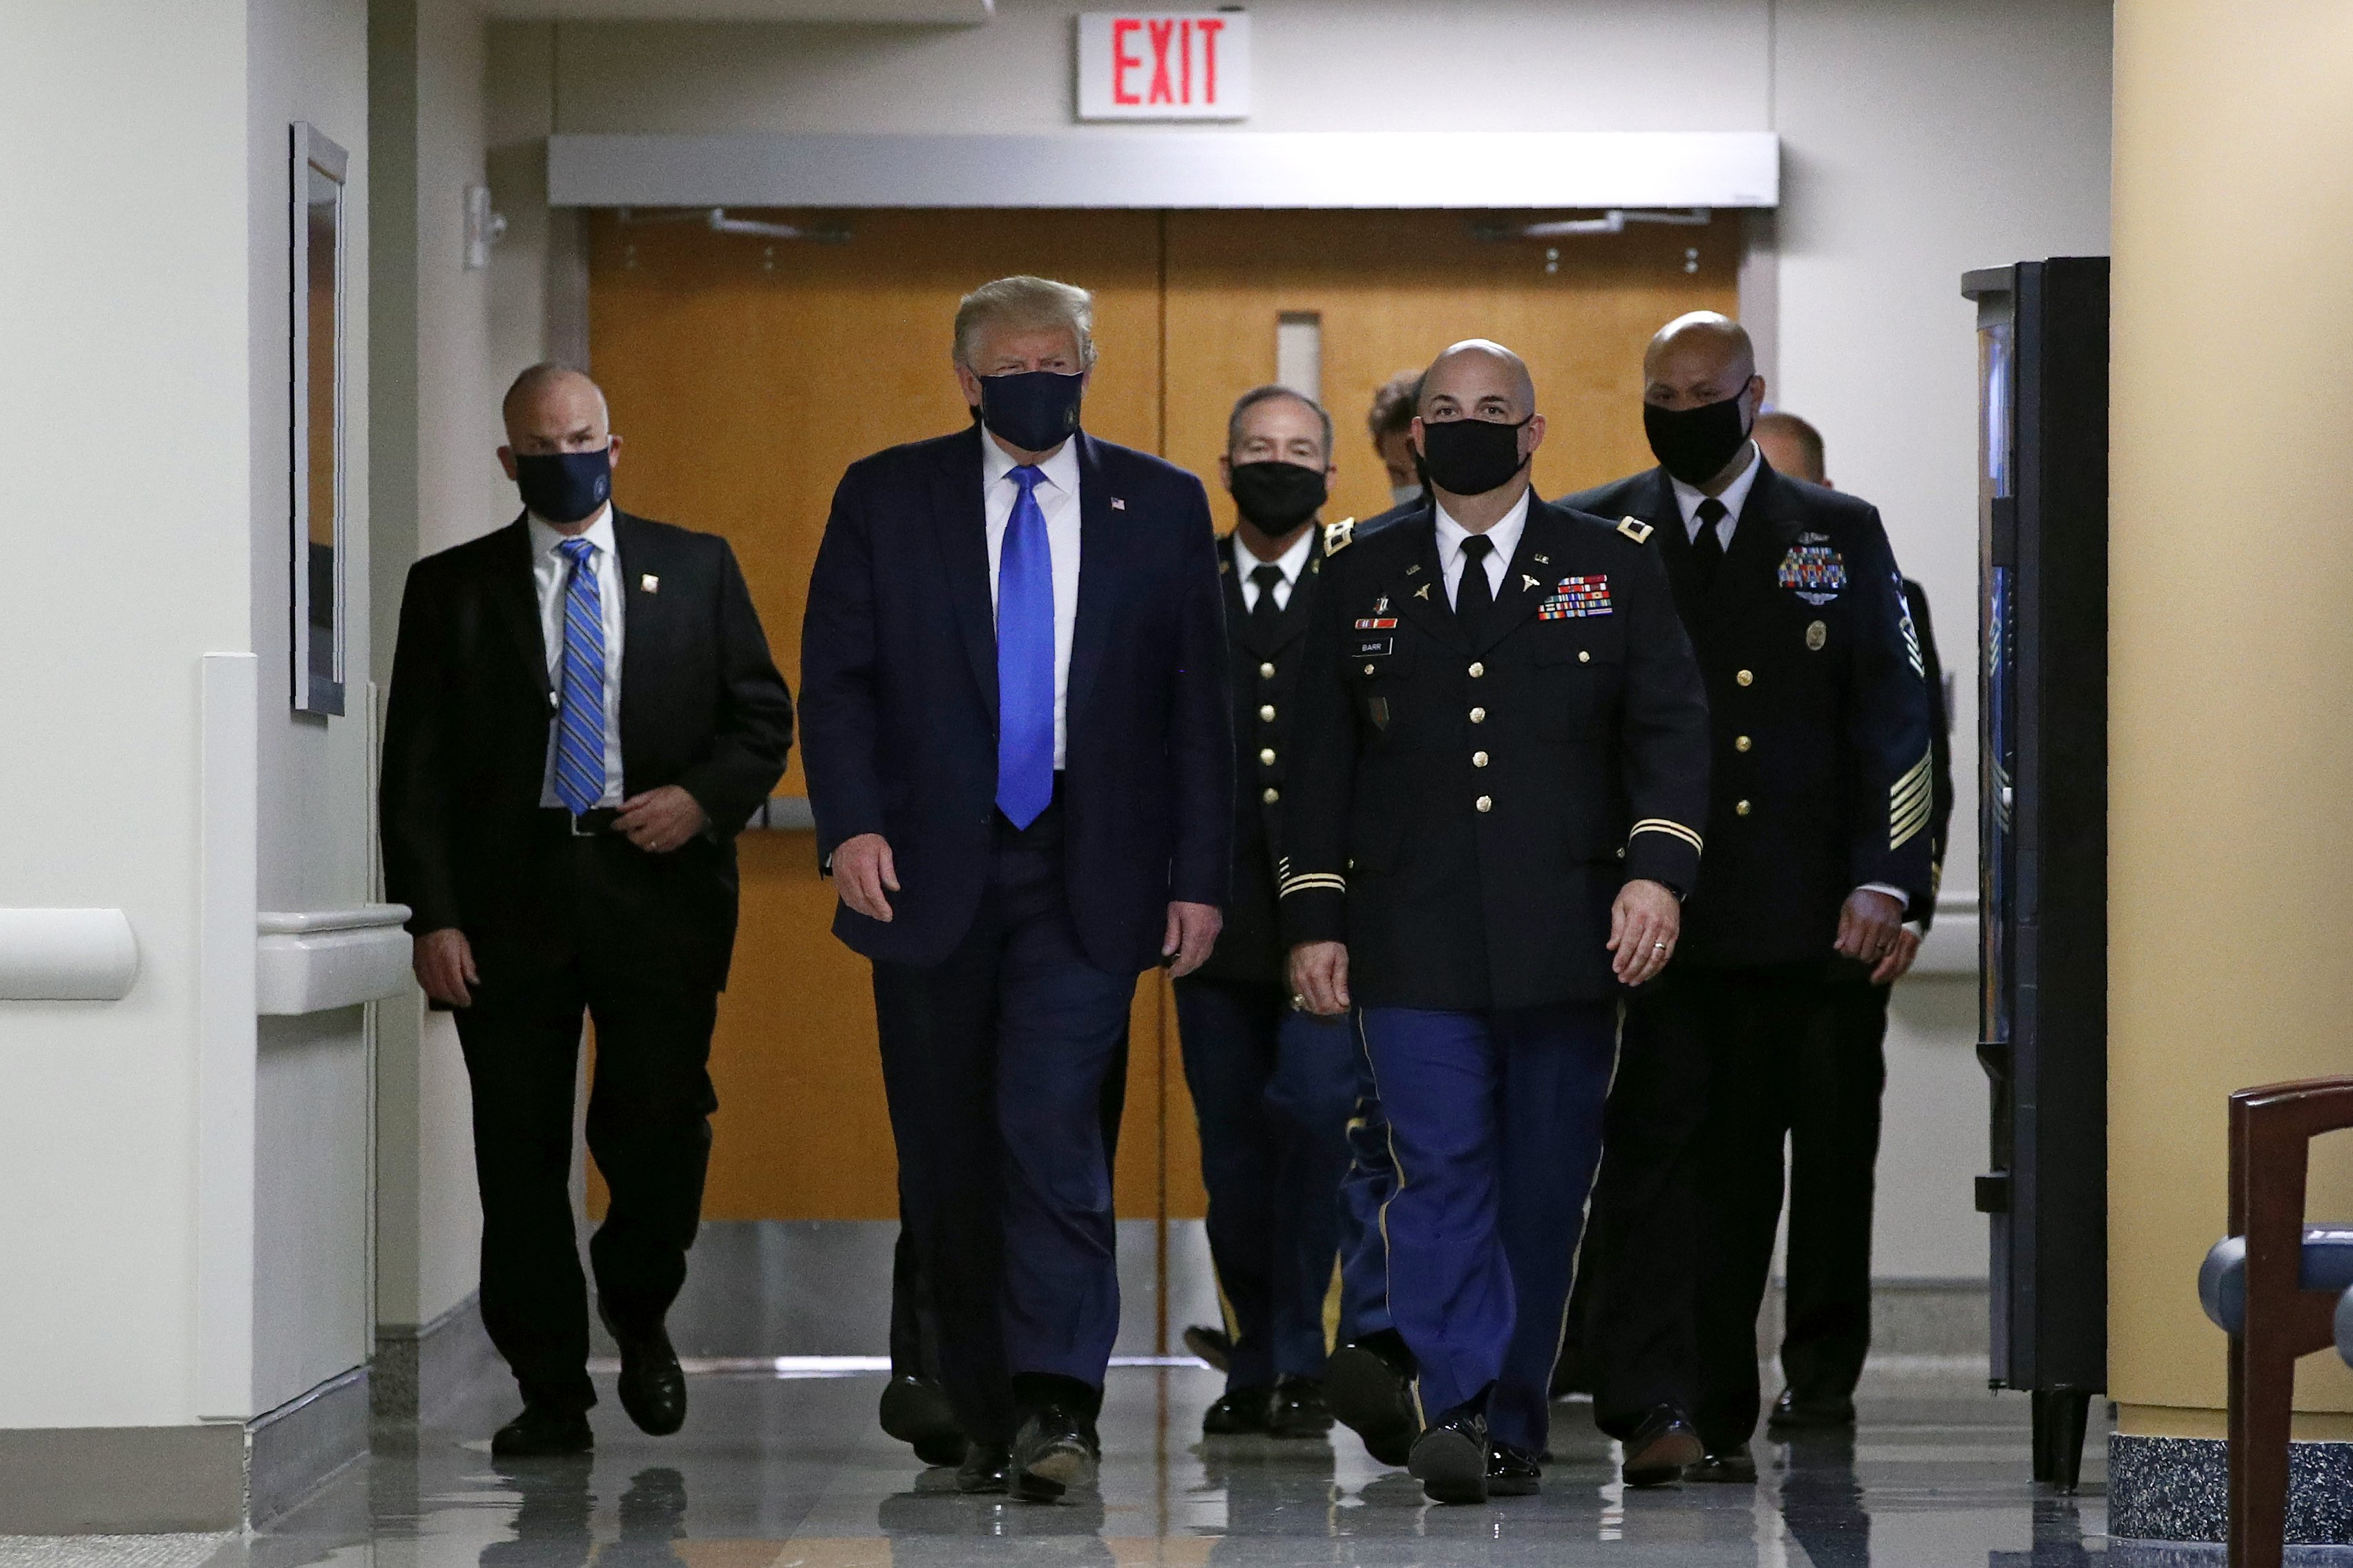 Trump wears mask in public setting for the first time during visit ...